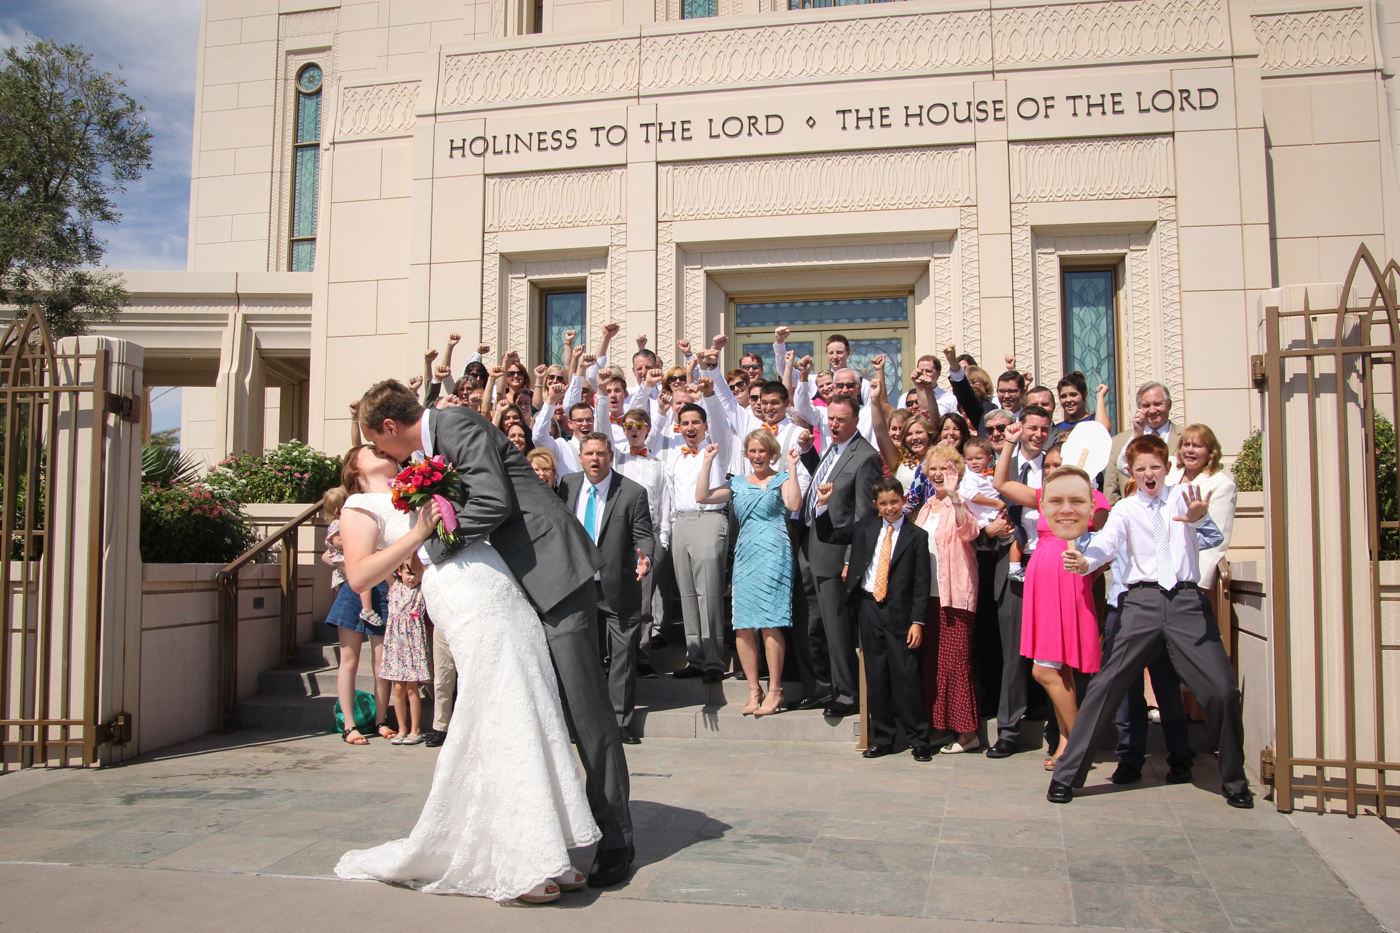 gilbert temple wedding photo-1-18